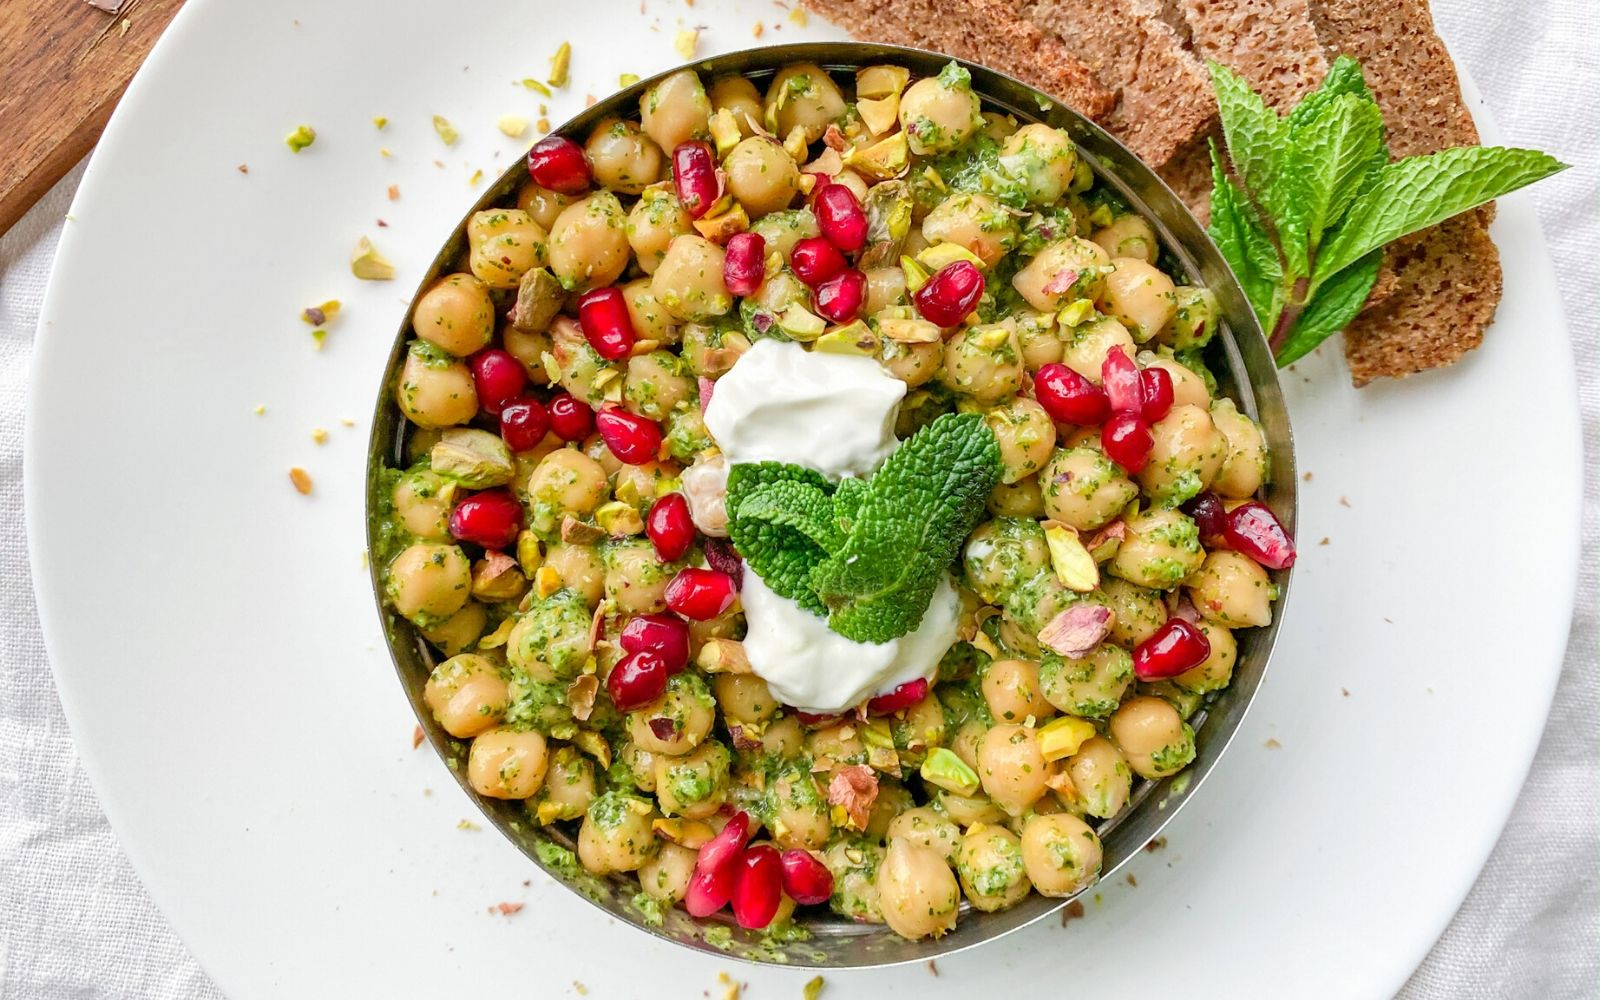 Healthy Lunch Easy Ideas | Healthy Chickpea Salad with Vegan Pesto